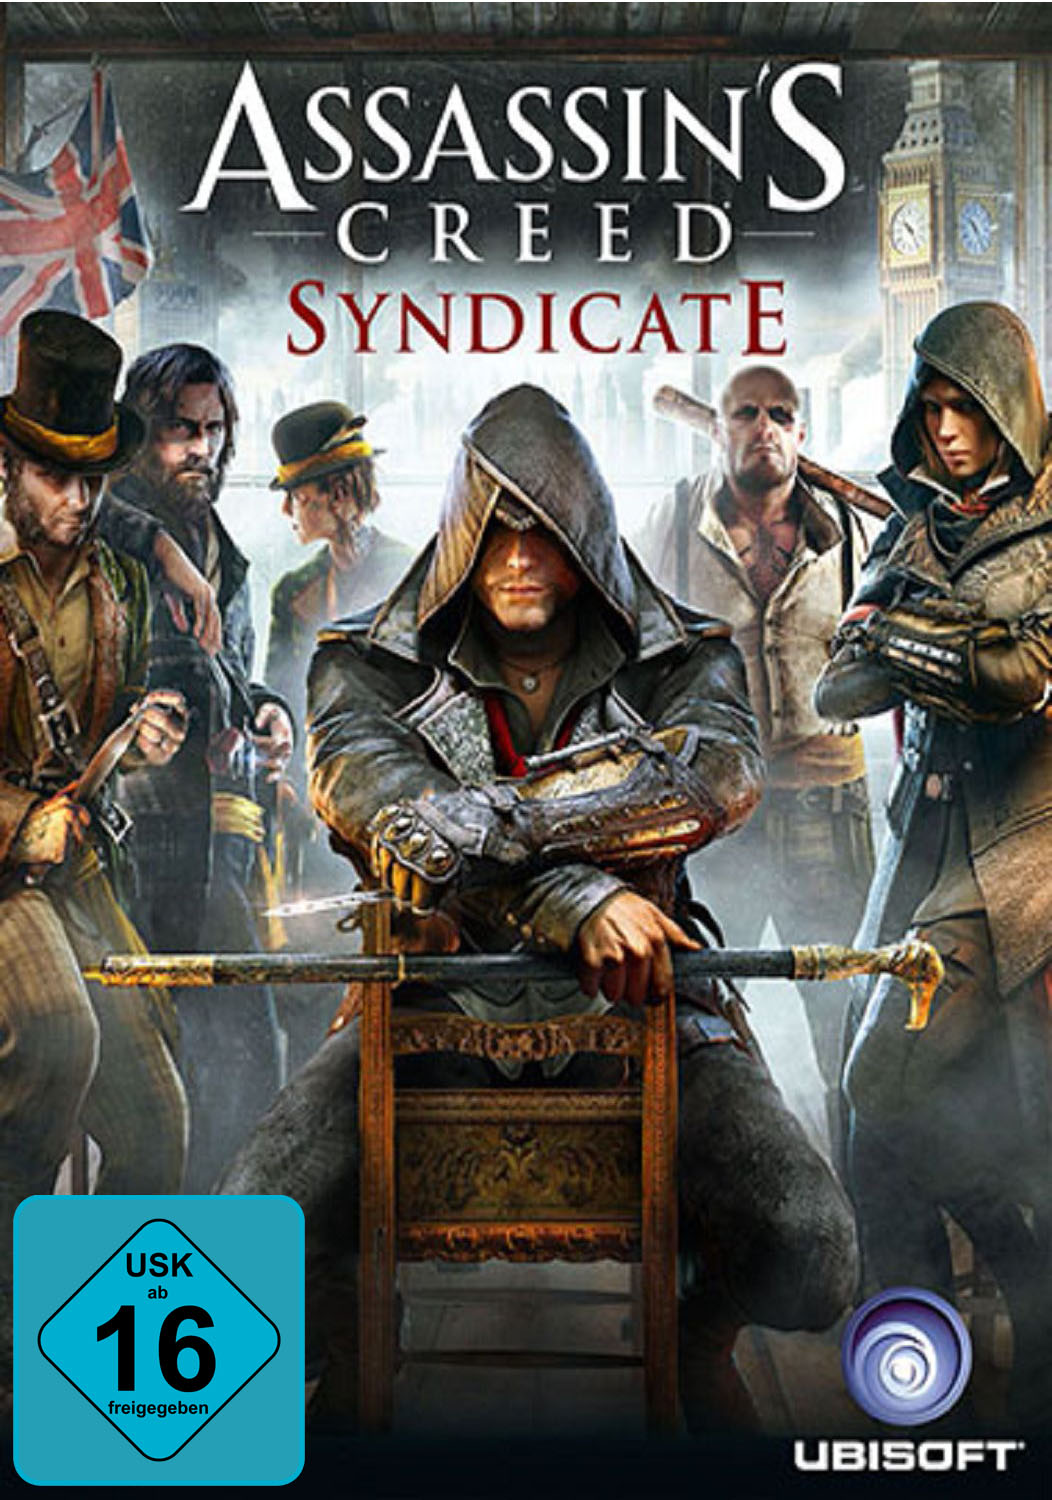 Official Assassin's Creed Syndicate - The Darwin and Dickens Conspiracy DLC